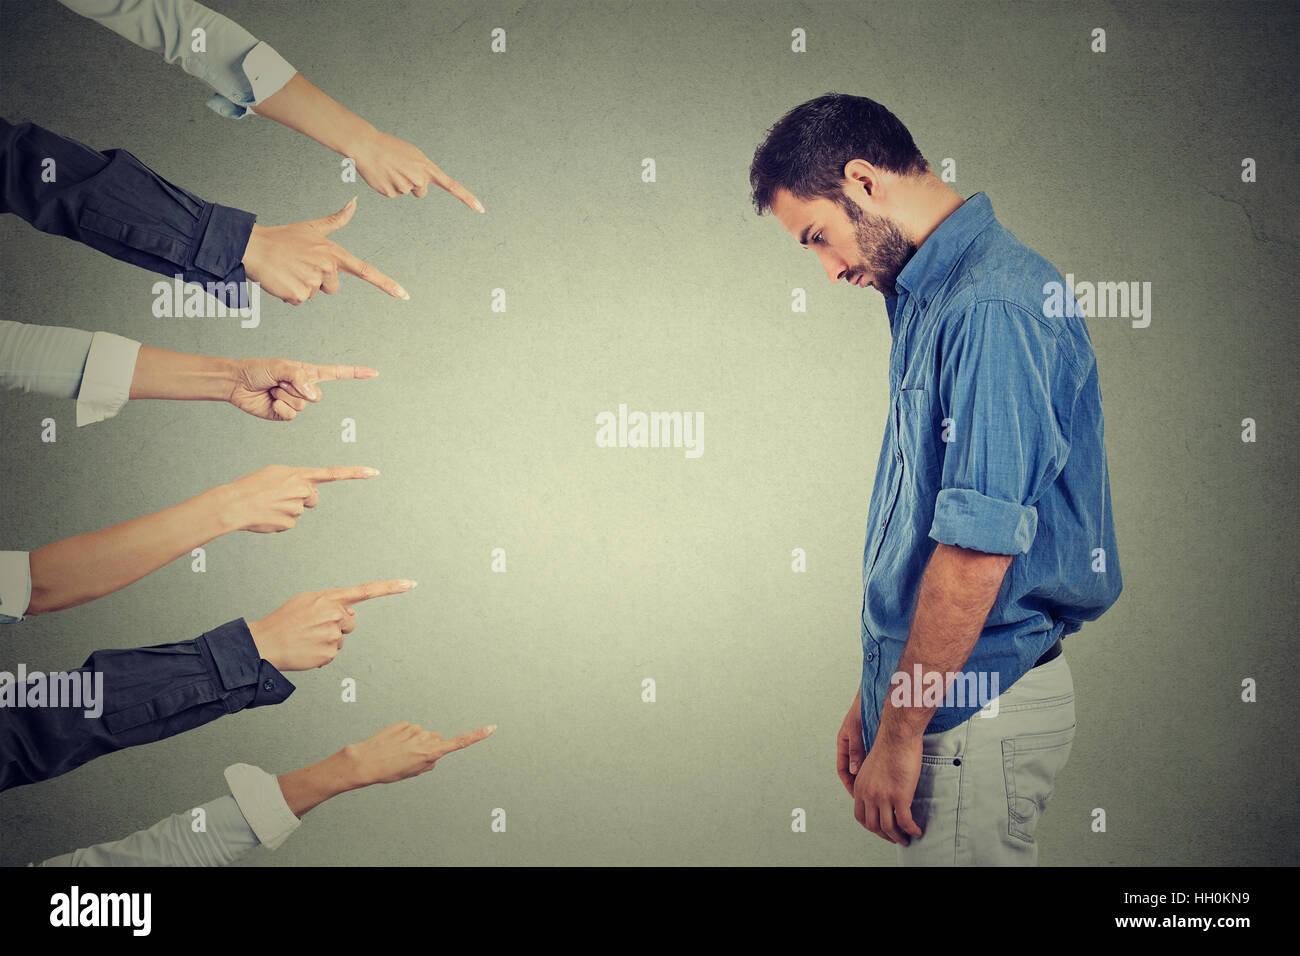 Concept of accusation guilty person man. Side profile sad upset man looking down many fingers pointing at him - Stock Image